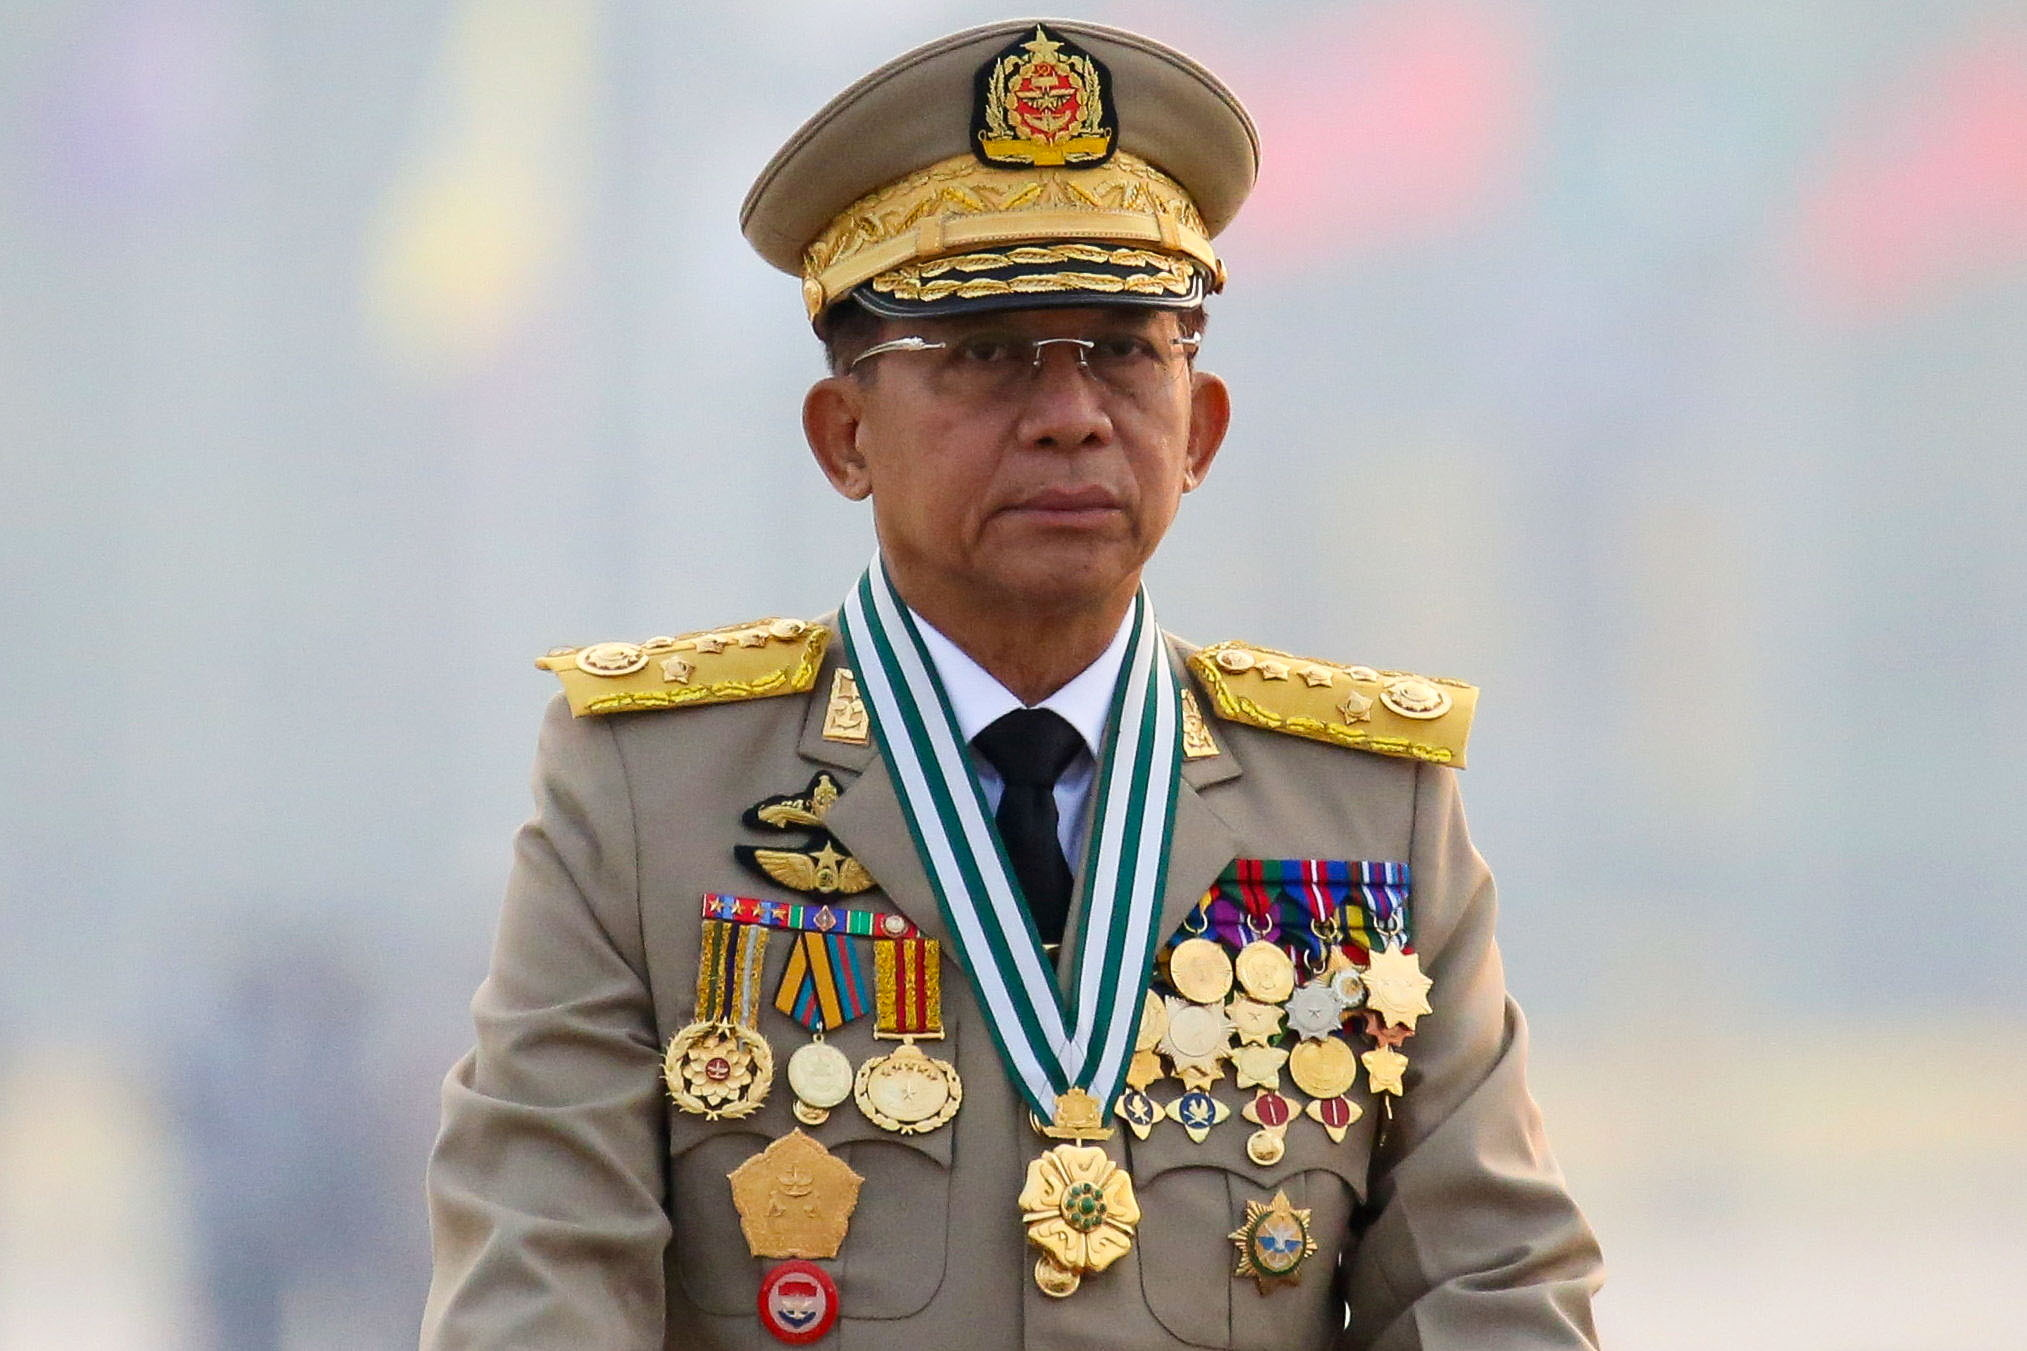 Myanmar's junta chief Senior General Min Aung Hlaing, who ousted the elected government in a coup on February 1, presides an army parade on Armed Forces Day in Naypyitaw, Myanmar, March 27, 2021. REUTERS/Stringer/File Photo